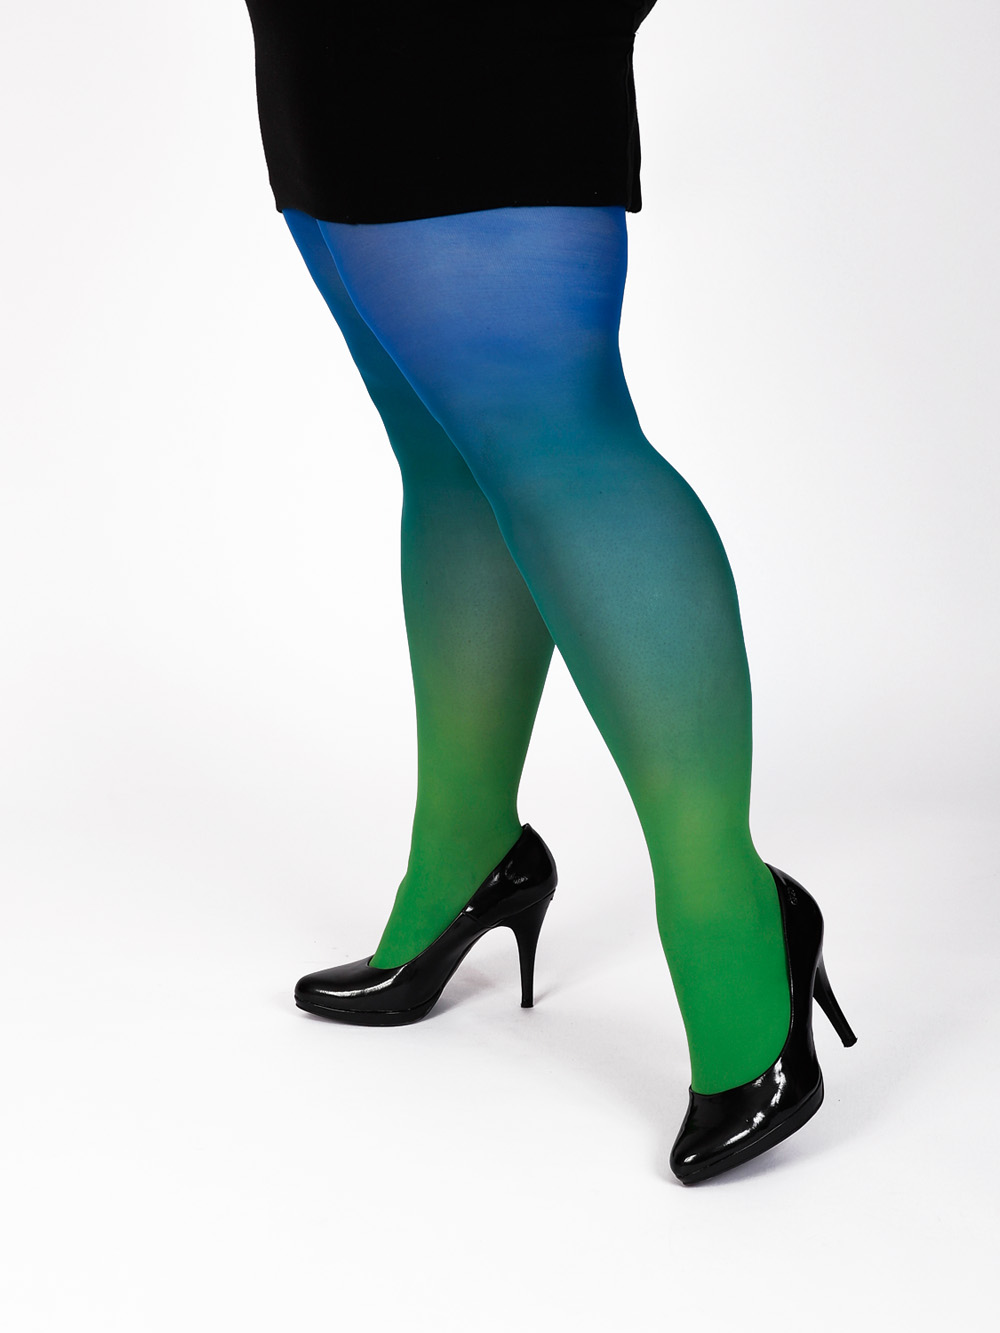 7cf998d202be2 Plus size green-blue tights | Virivee Tights